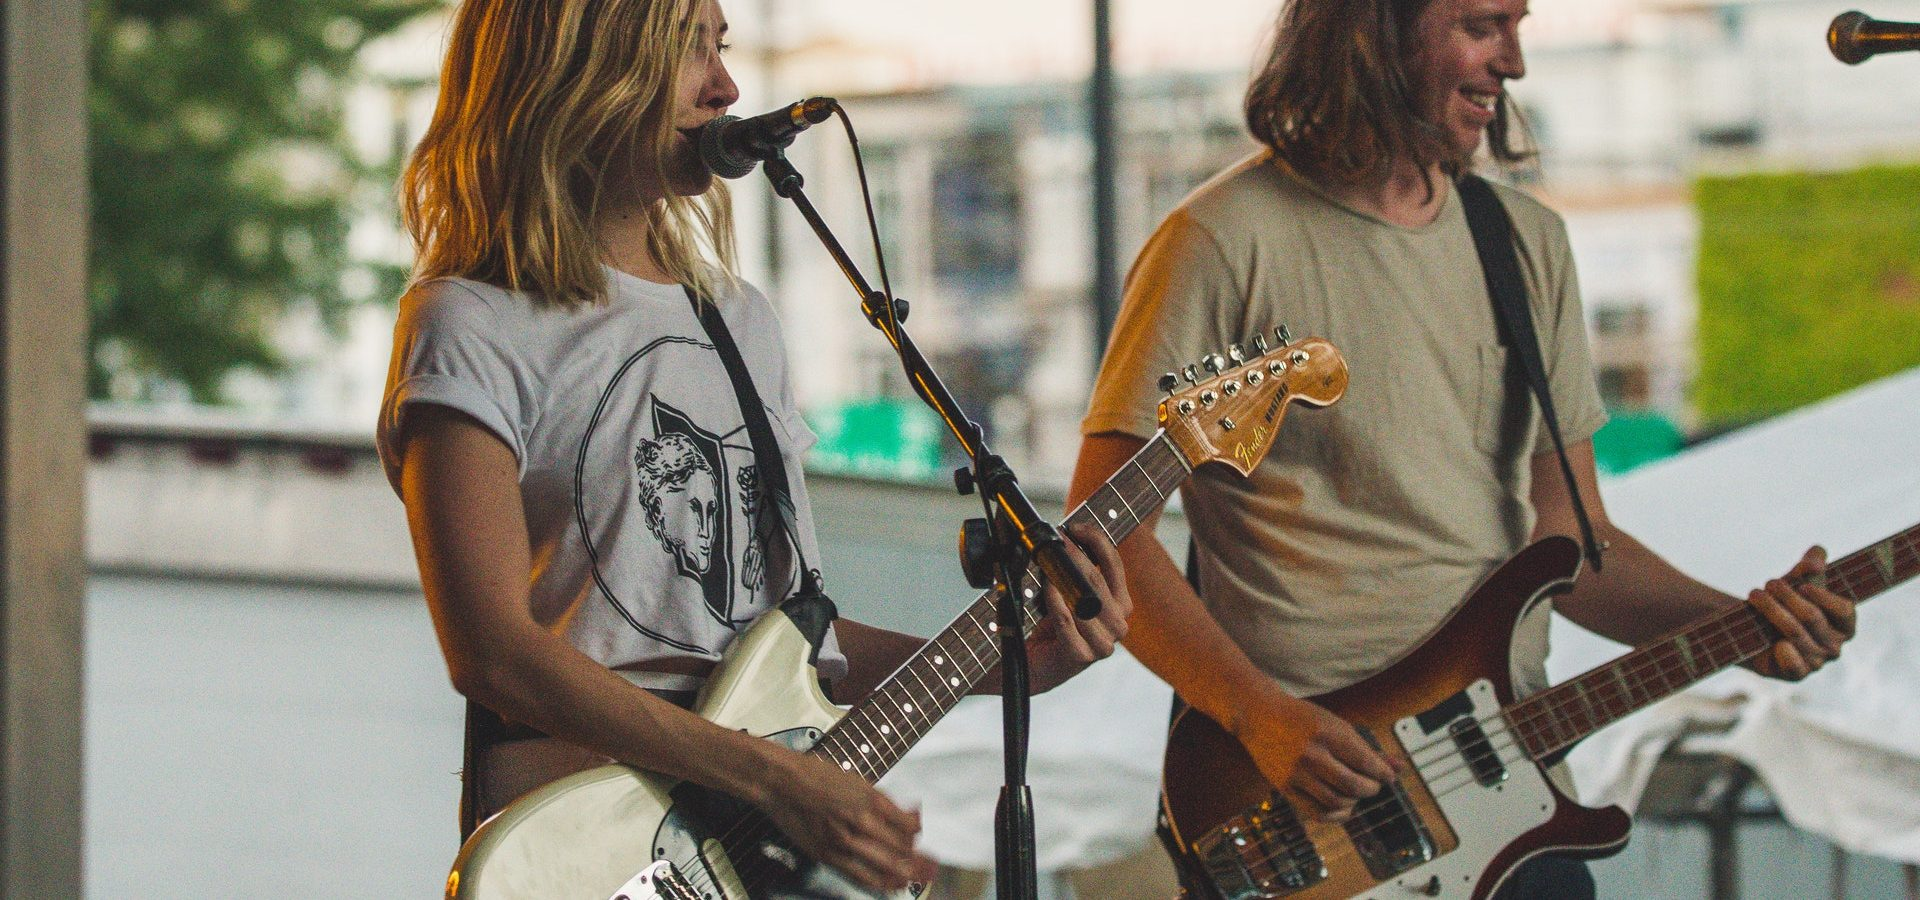 Tinnitus among musicians is common for people who play in live bands at loud volumes